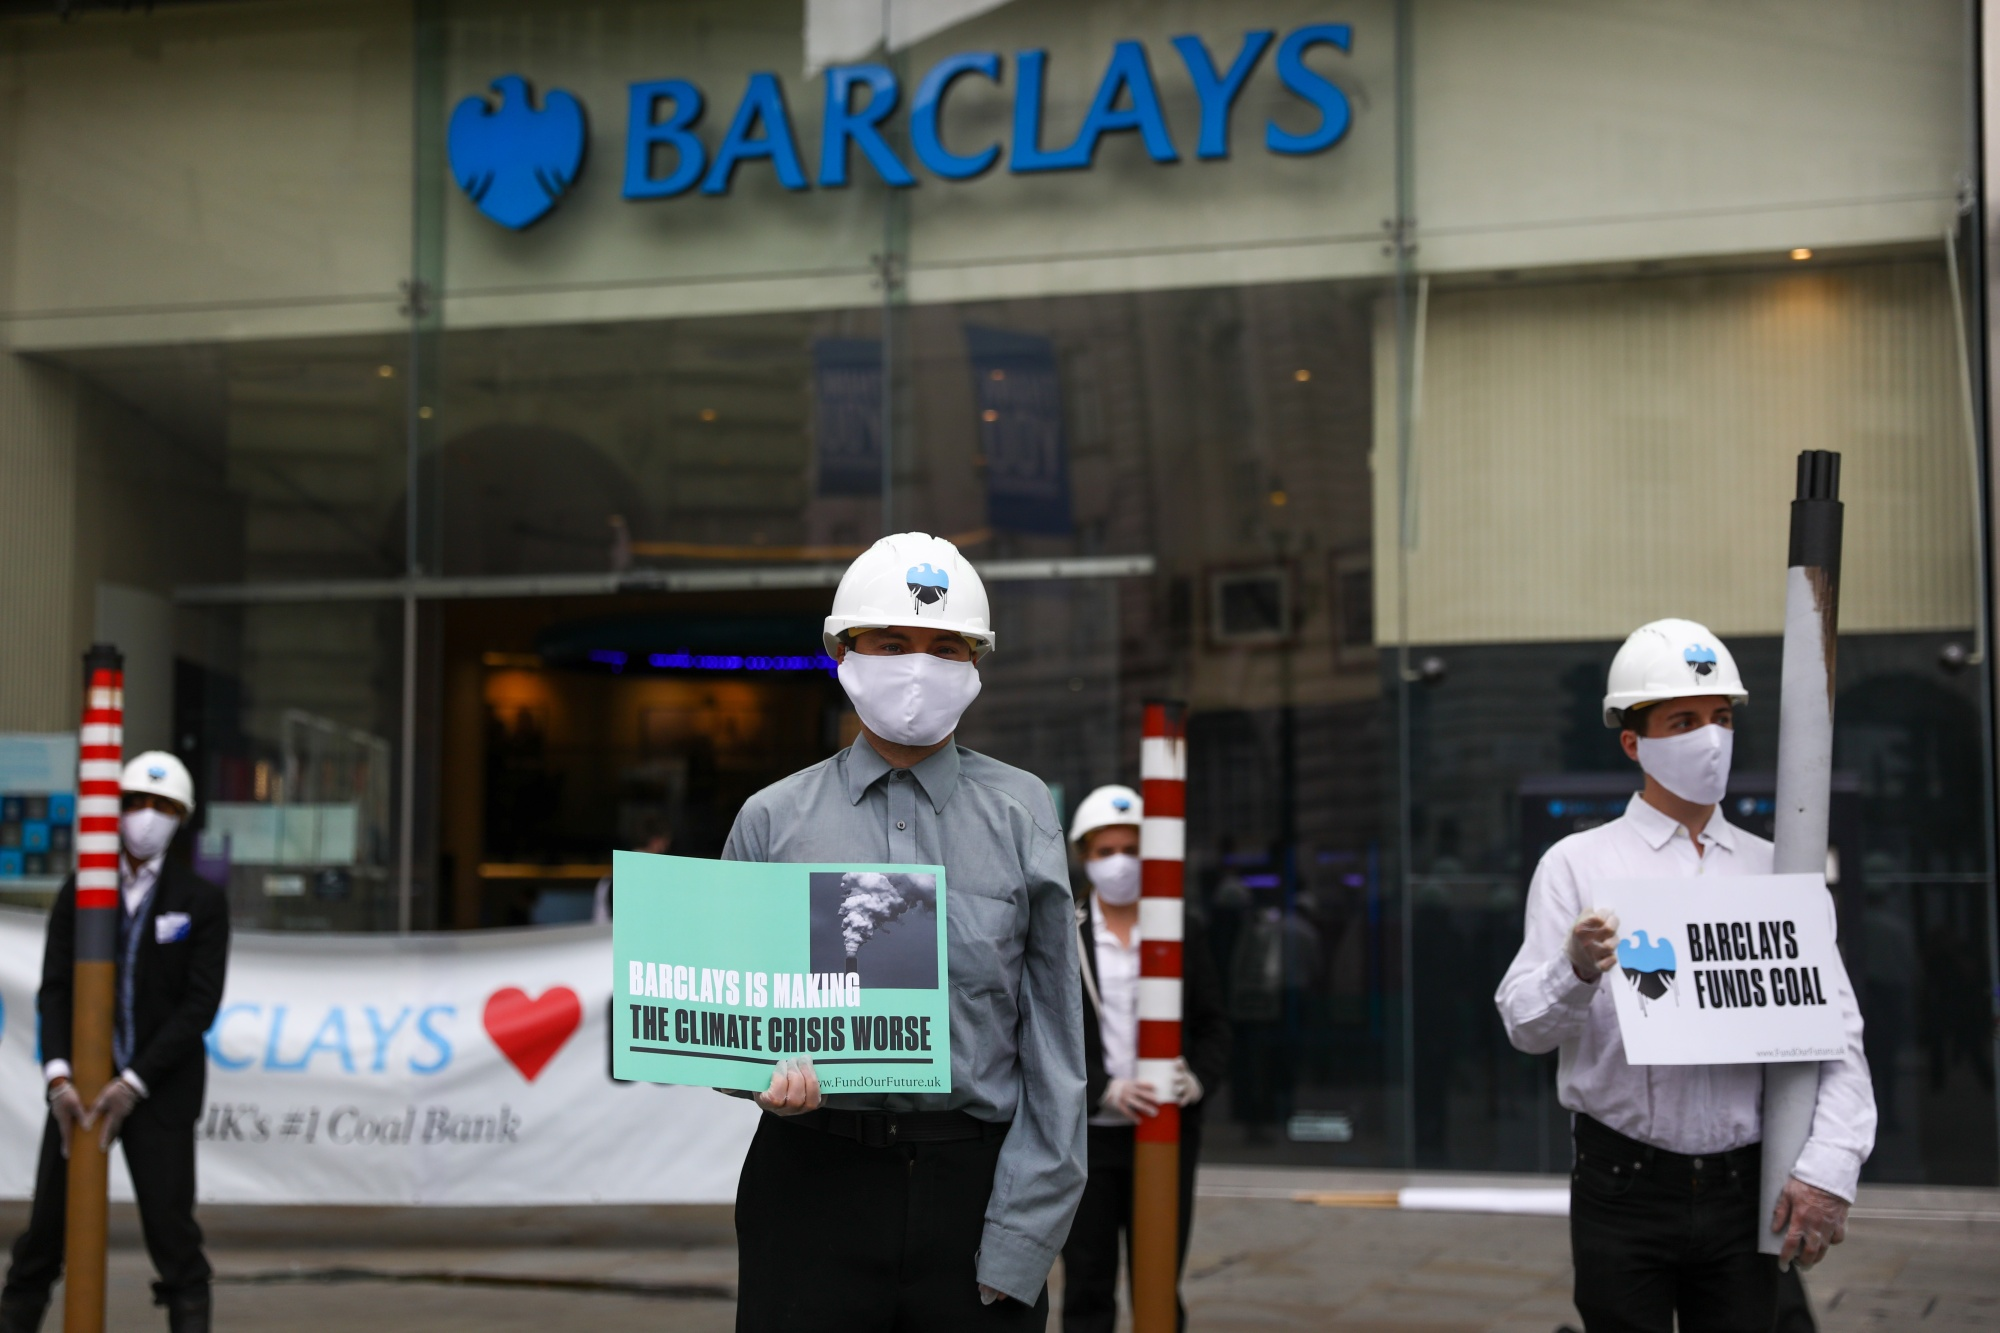 Climate Activists TargetBarclaysPlc Over Coal Investments